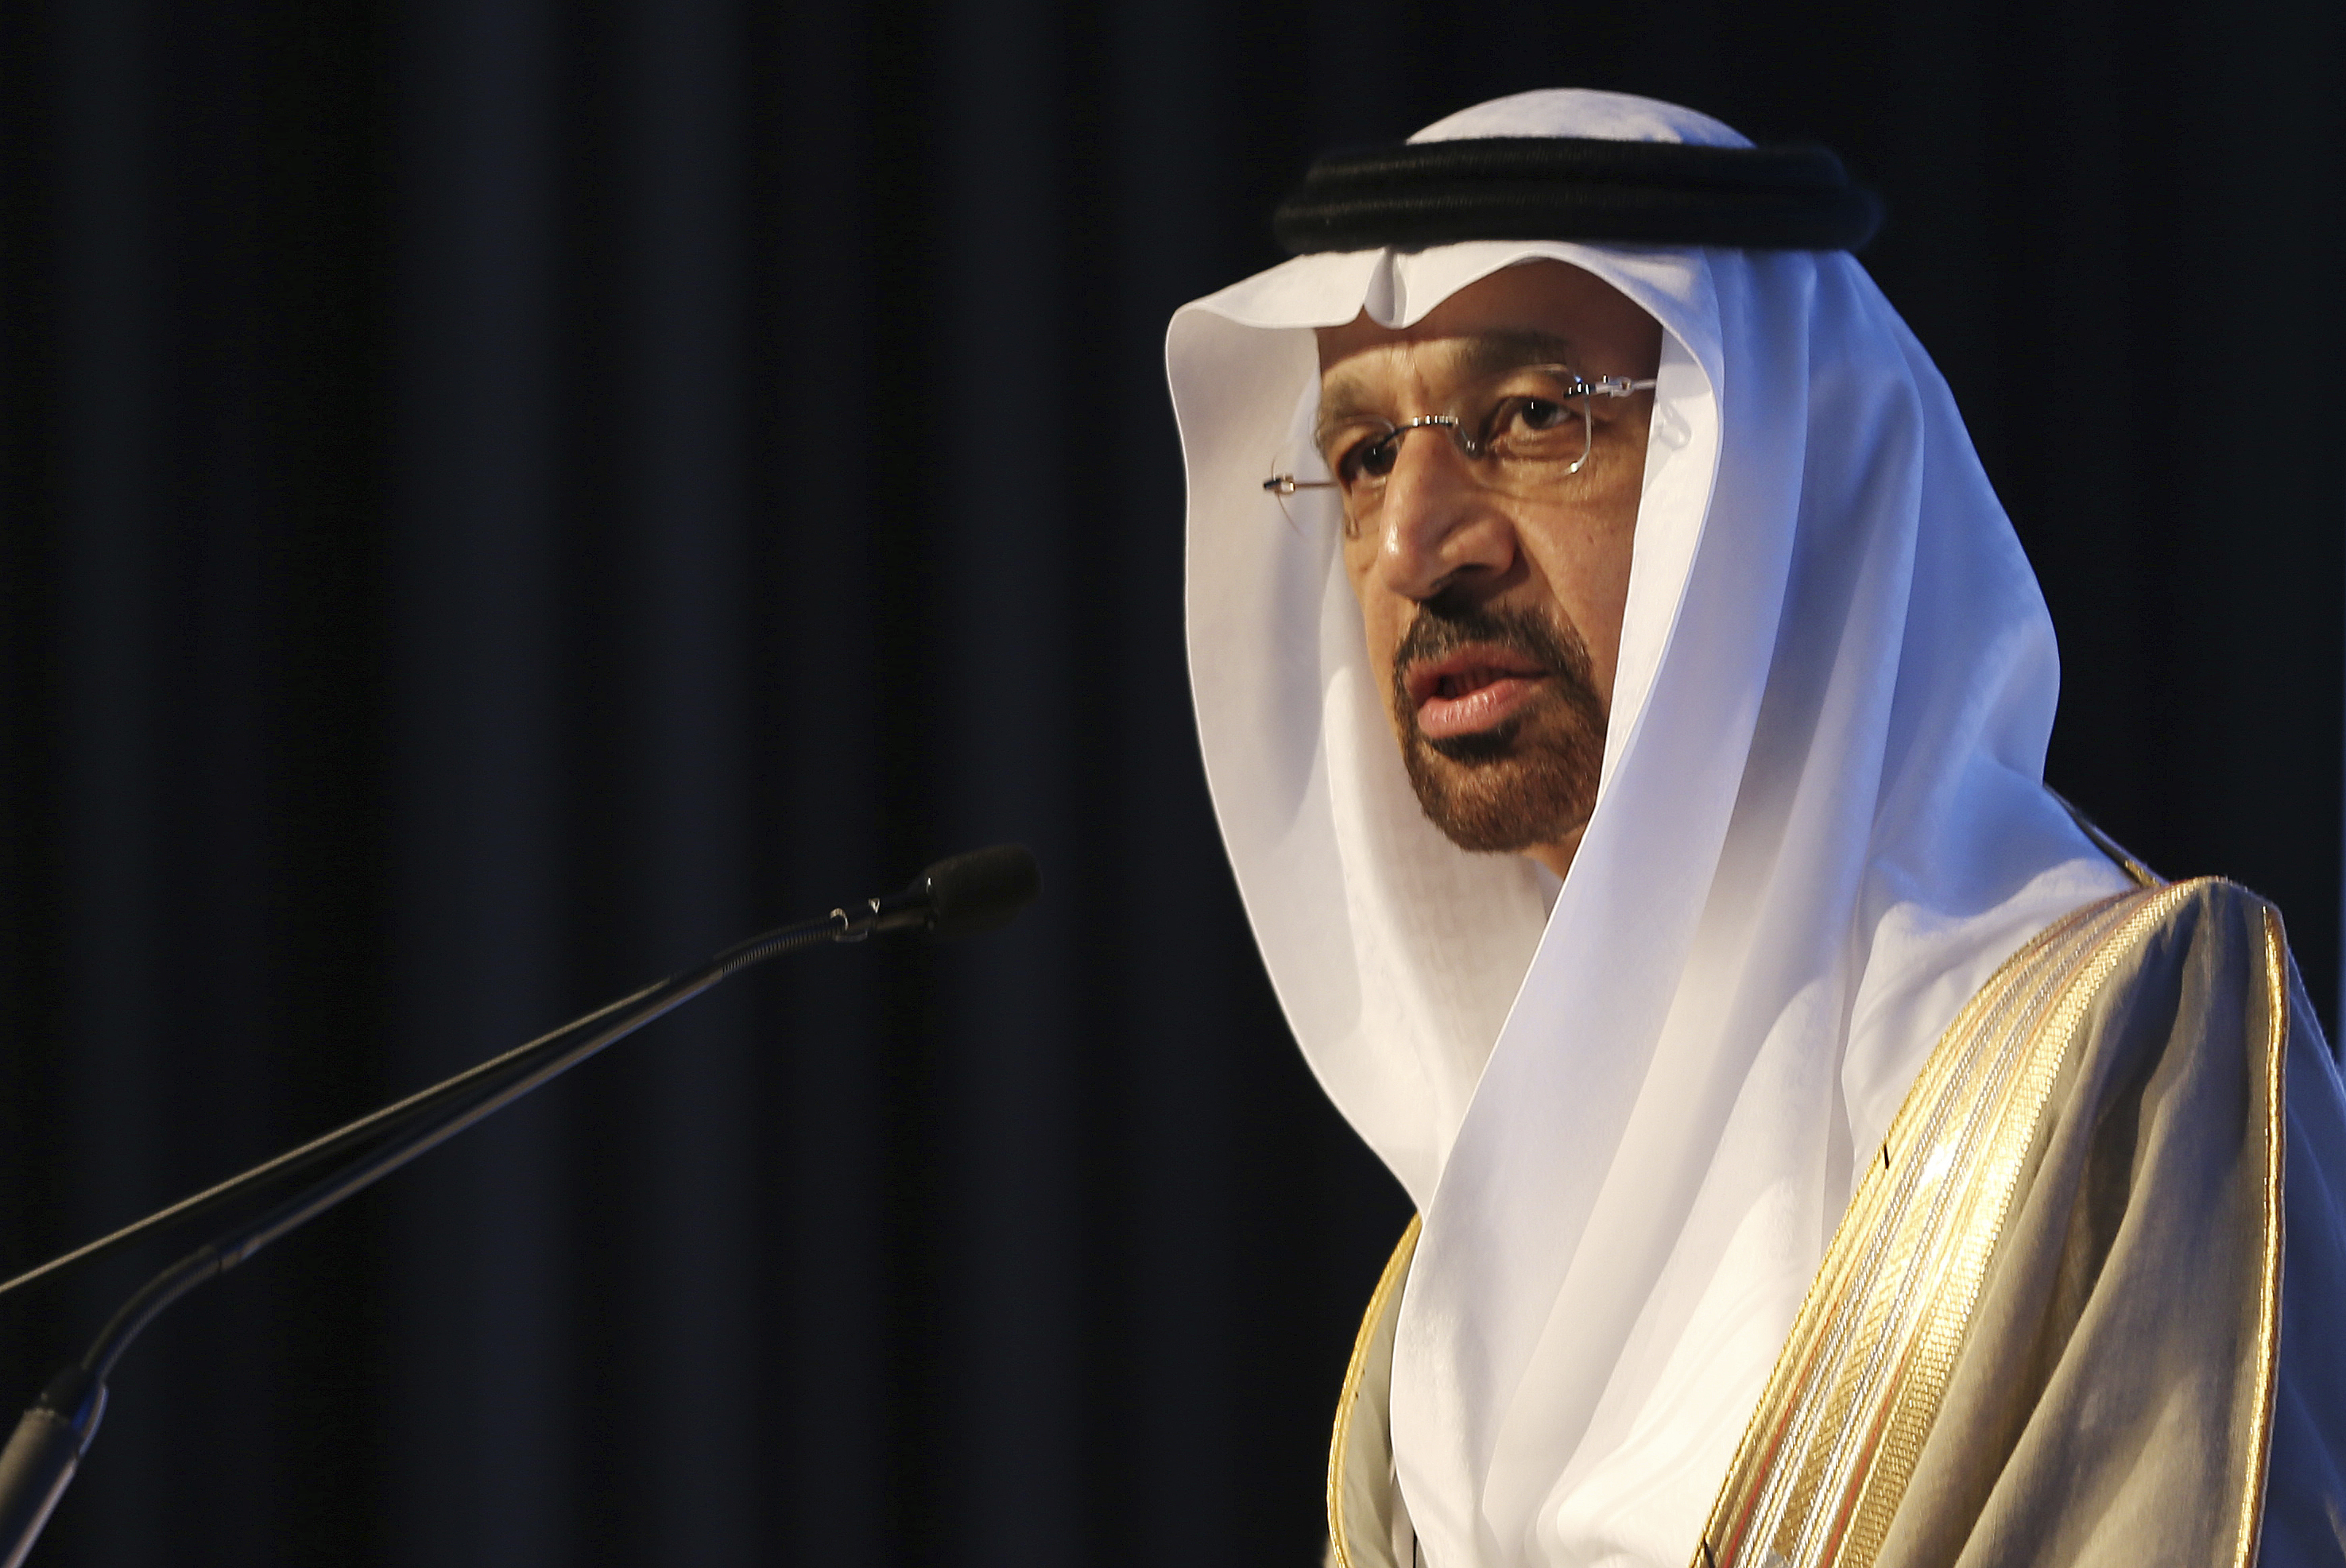 Emirates Oil FILE- In this Jan. 12, 2017 file photo, Saudi's Oil Minister Khalid al-Falih, speaks during an Energy Forum in Abu Dhabi, United Arab Emirates. On Thursday, April 20, 2017, Al-Falih suggested that production cuts agreed to by OPEC members and countries outside of the cartel may need to continue to help shore up crude oil prices. (AP Photo/Kamran Jebreili, File)